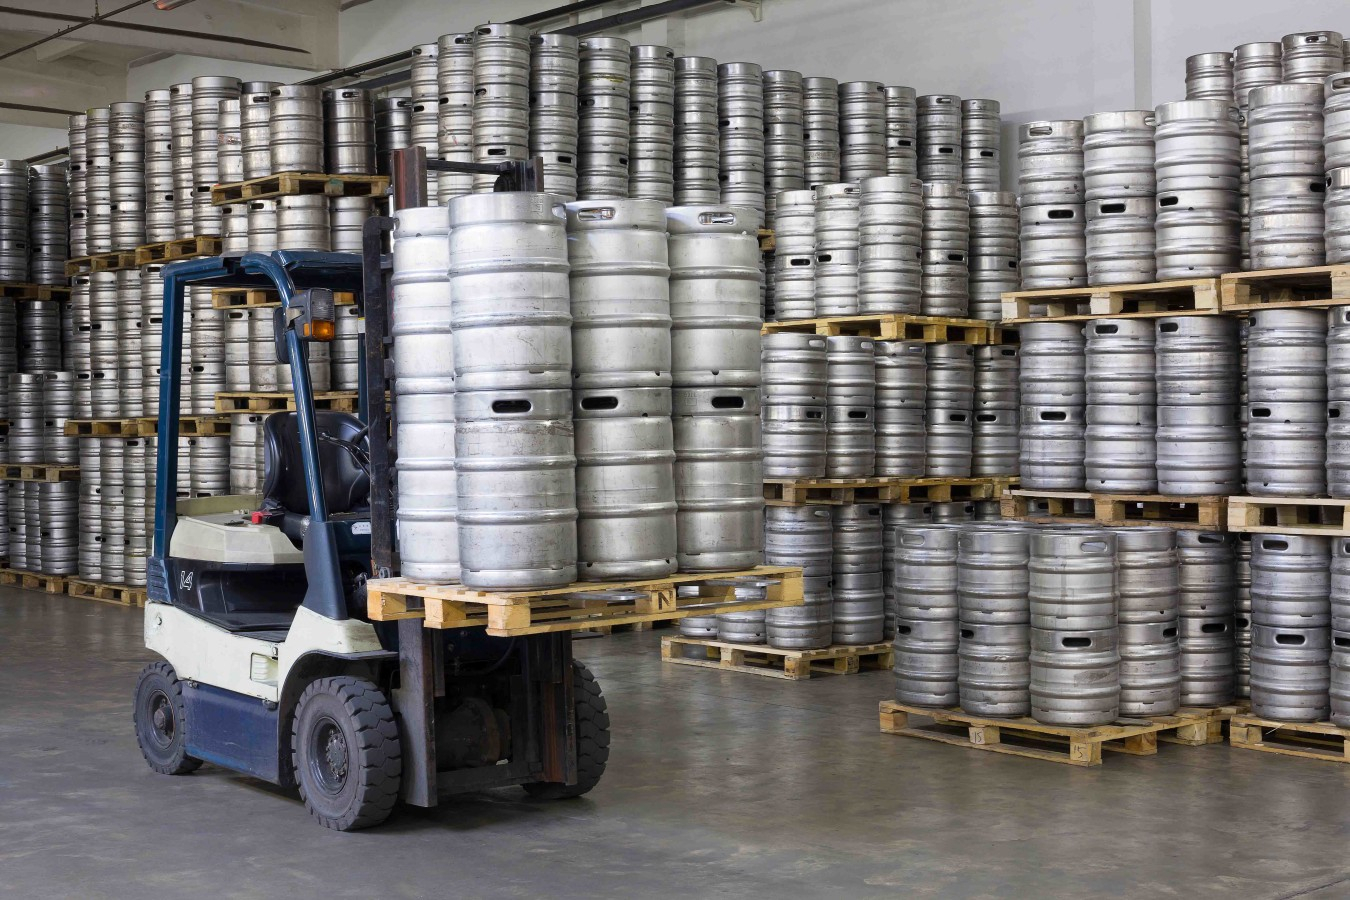 Keg Tracking Spreadsheet Intended For Draft Beer Inventory — How To Count A Keg Of Beer?  Bars — Bevspot